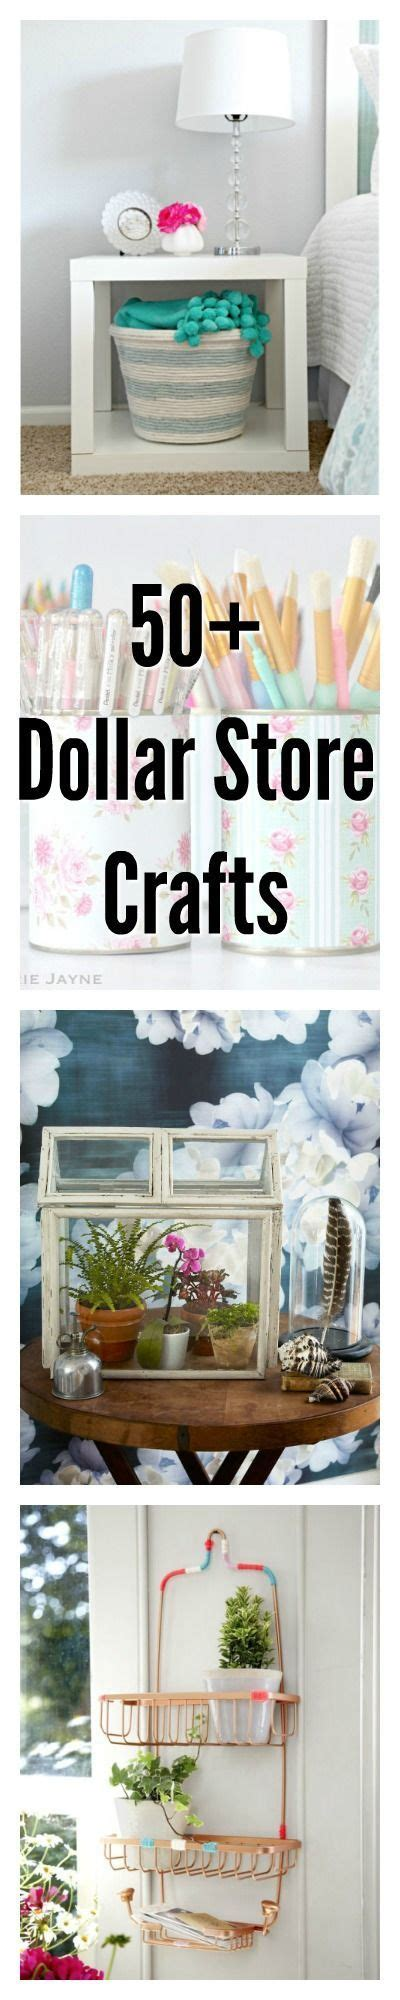 dollar store hacks dollar store hacks dollar stores and hacks on pinterest